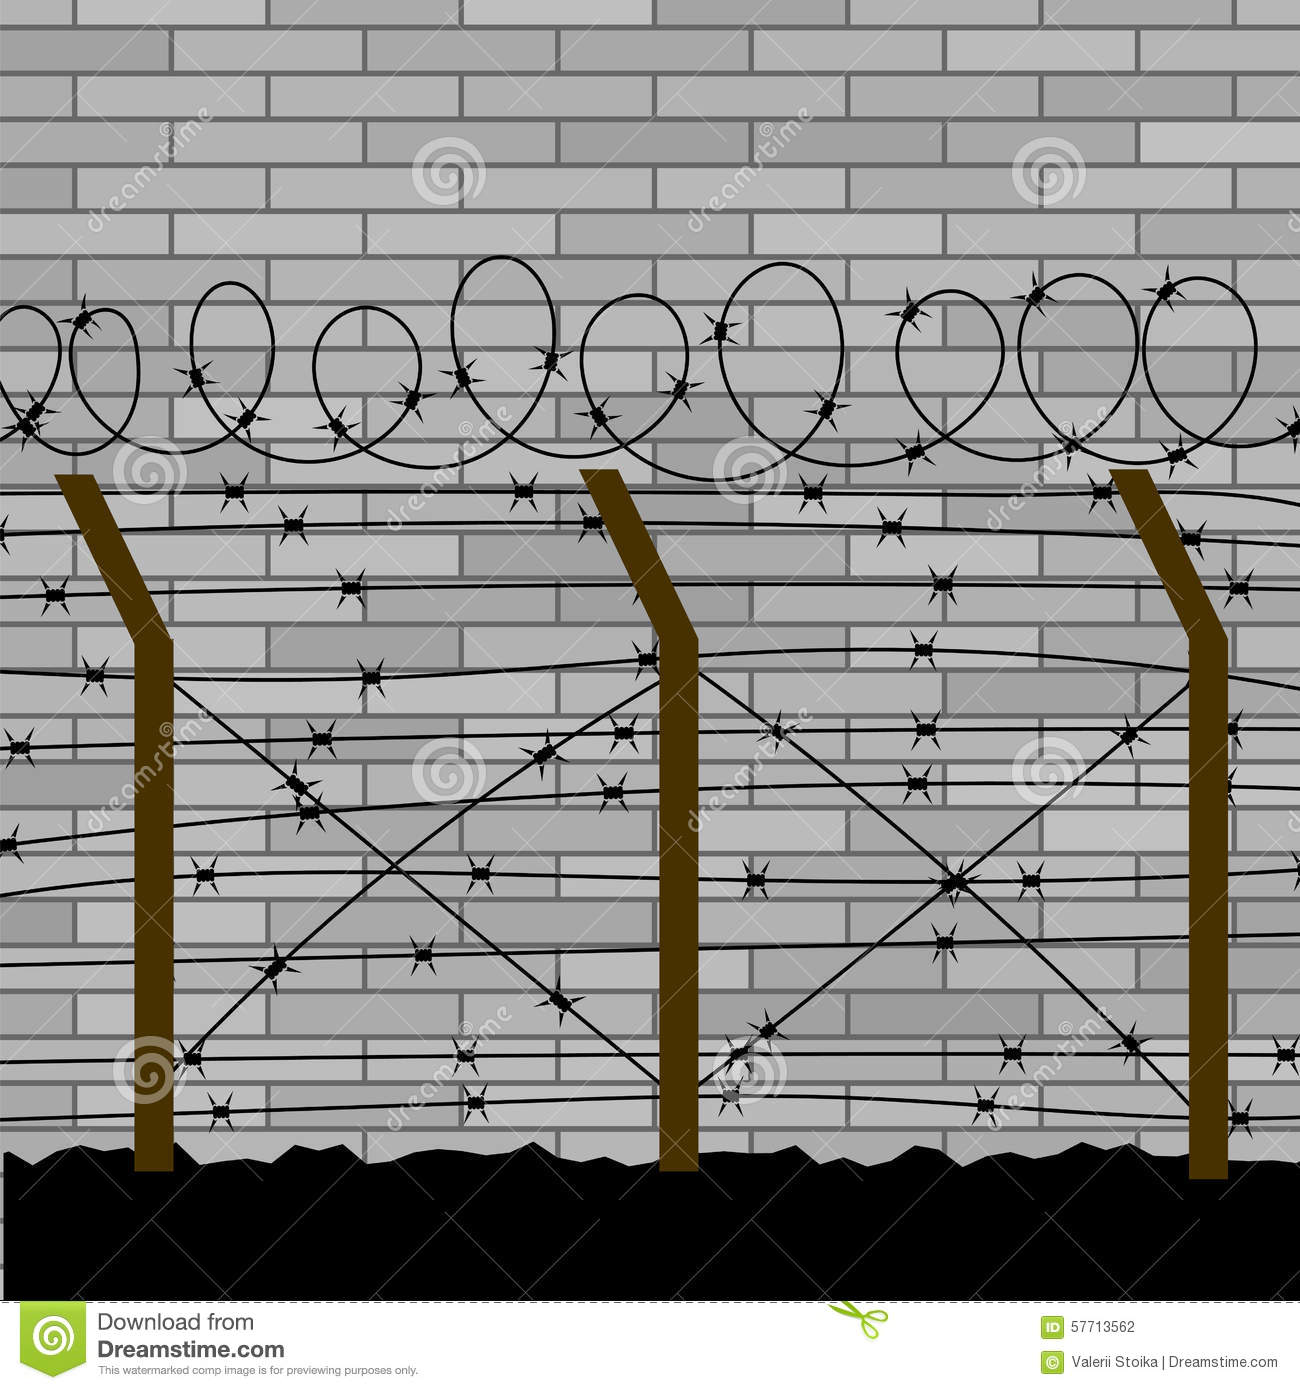 how to draw a barbed wire fence